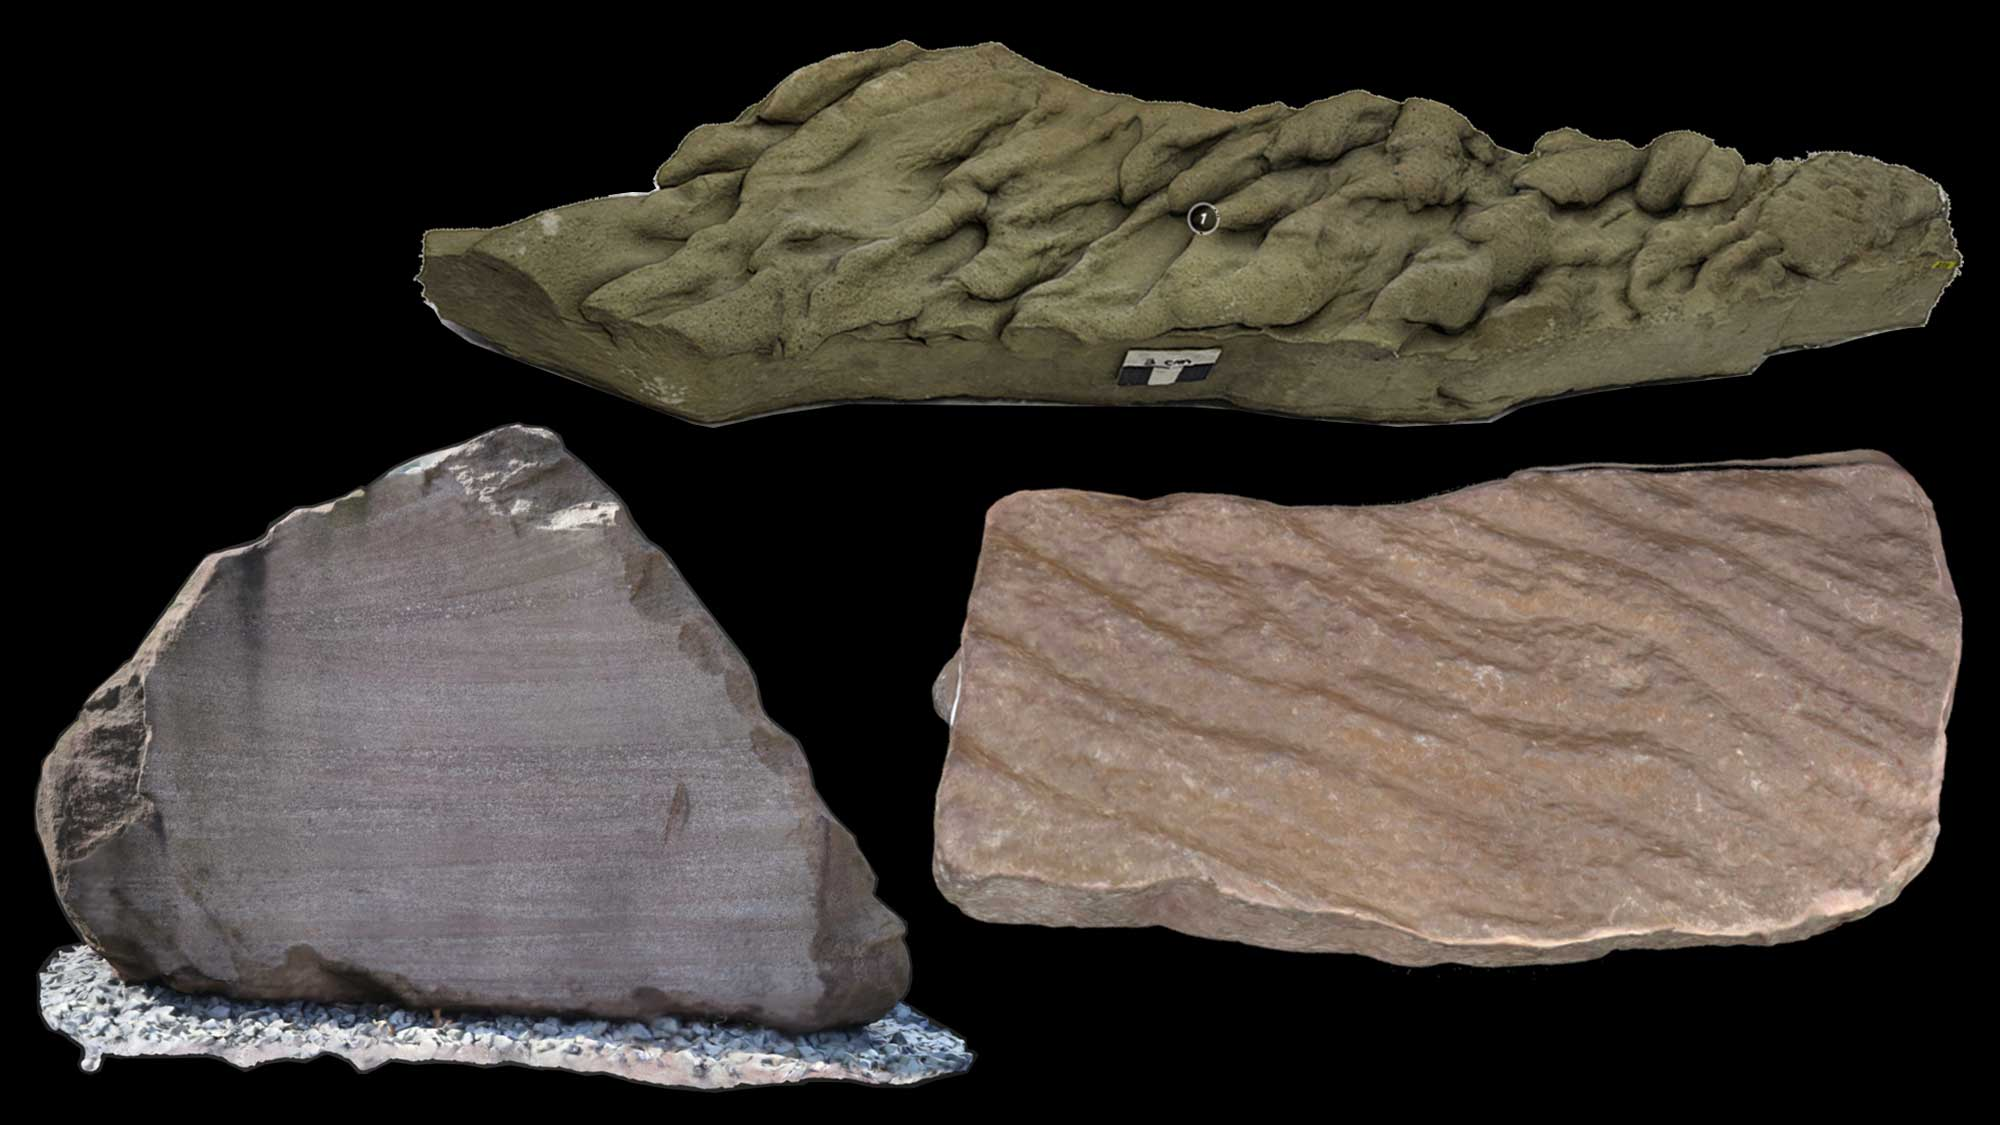 Image shows various types of sedimentary structures.